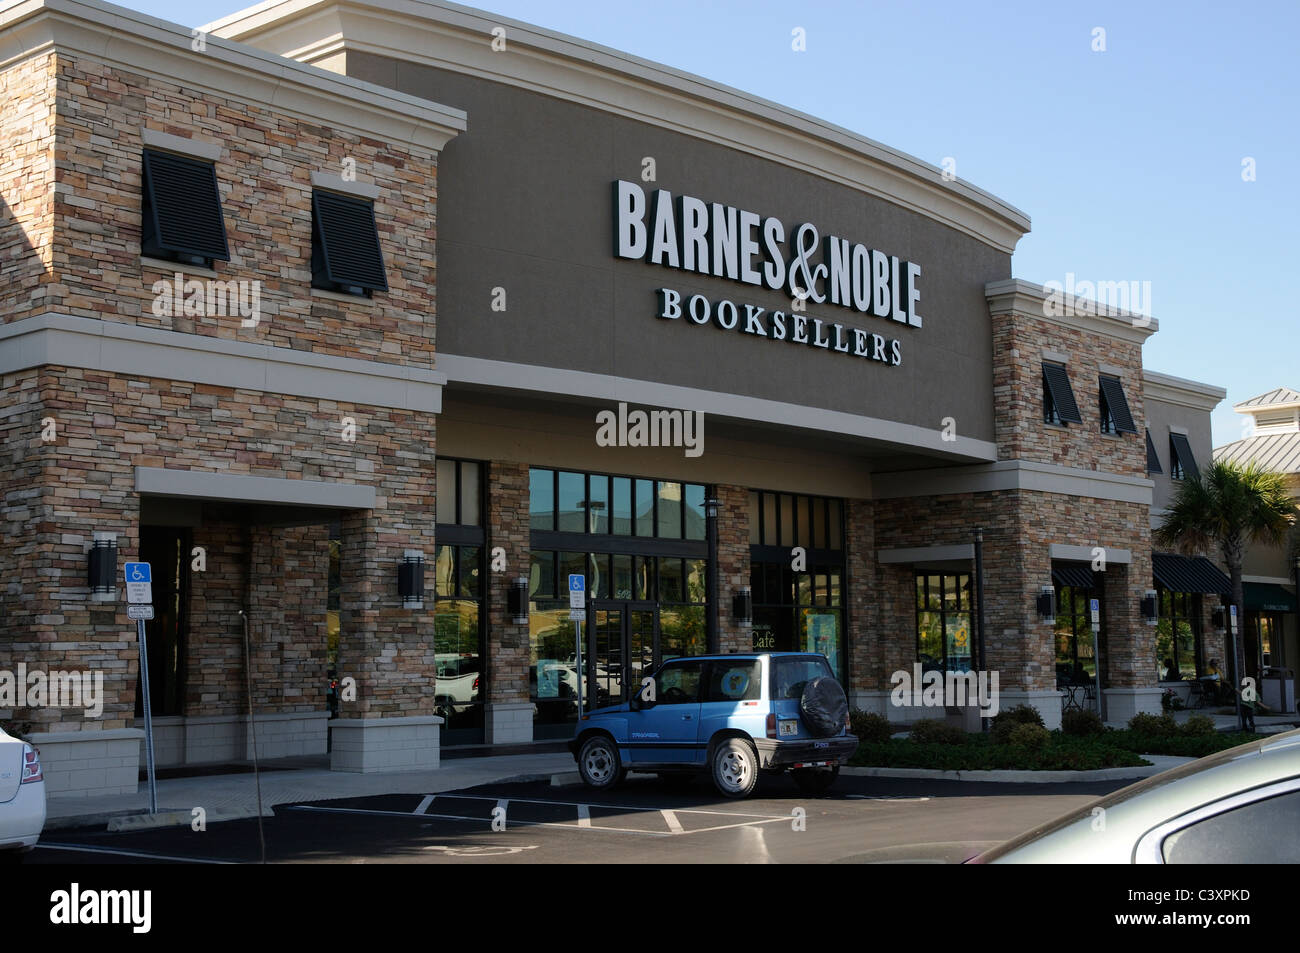 Barnes & Noble booksellers Florida USA - Stock Image